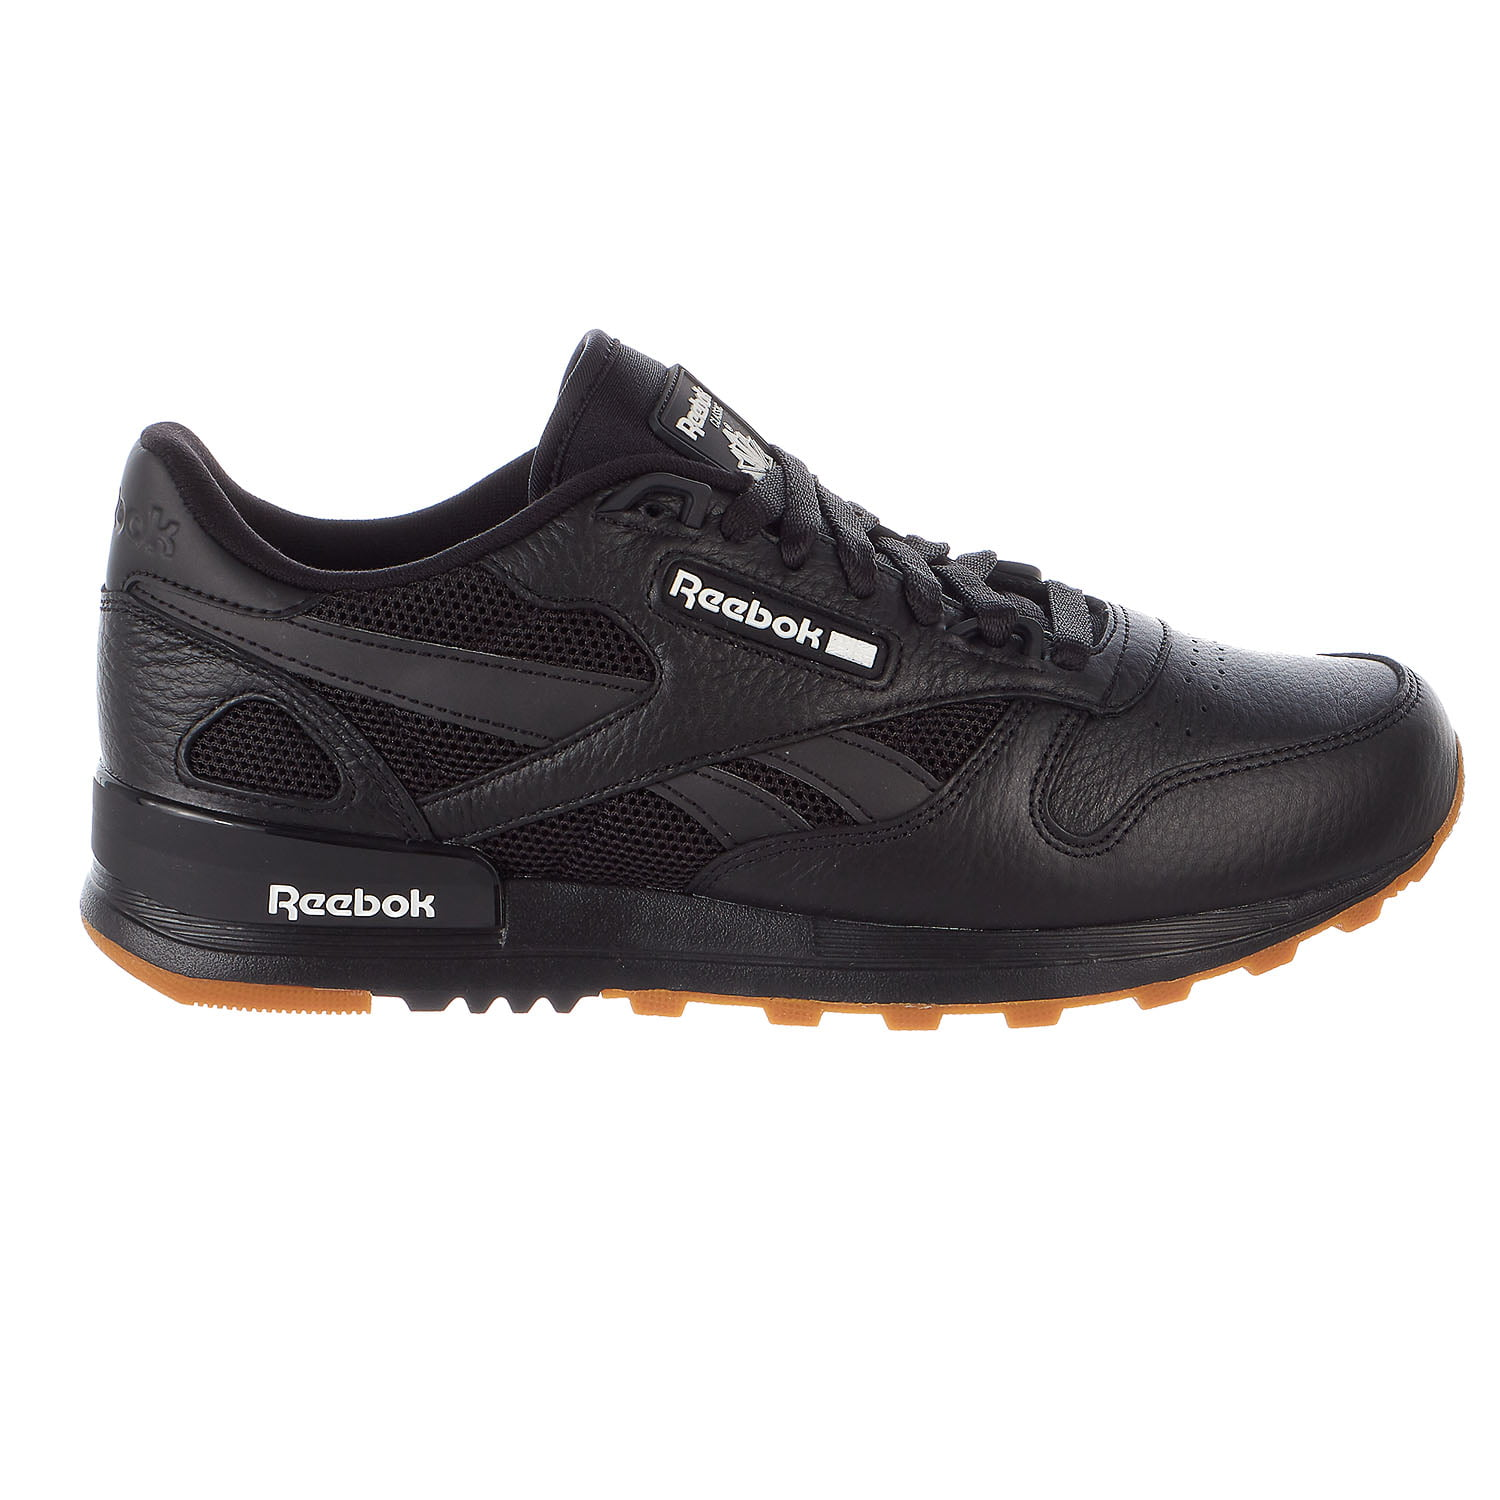 Reebok CL Leather 2.0 Fashion Sneaker Mens by Reebok